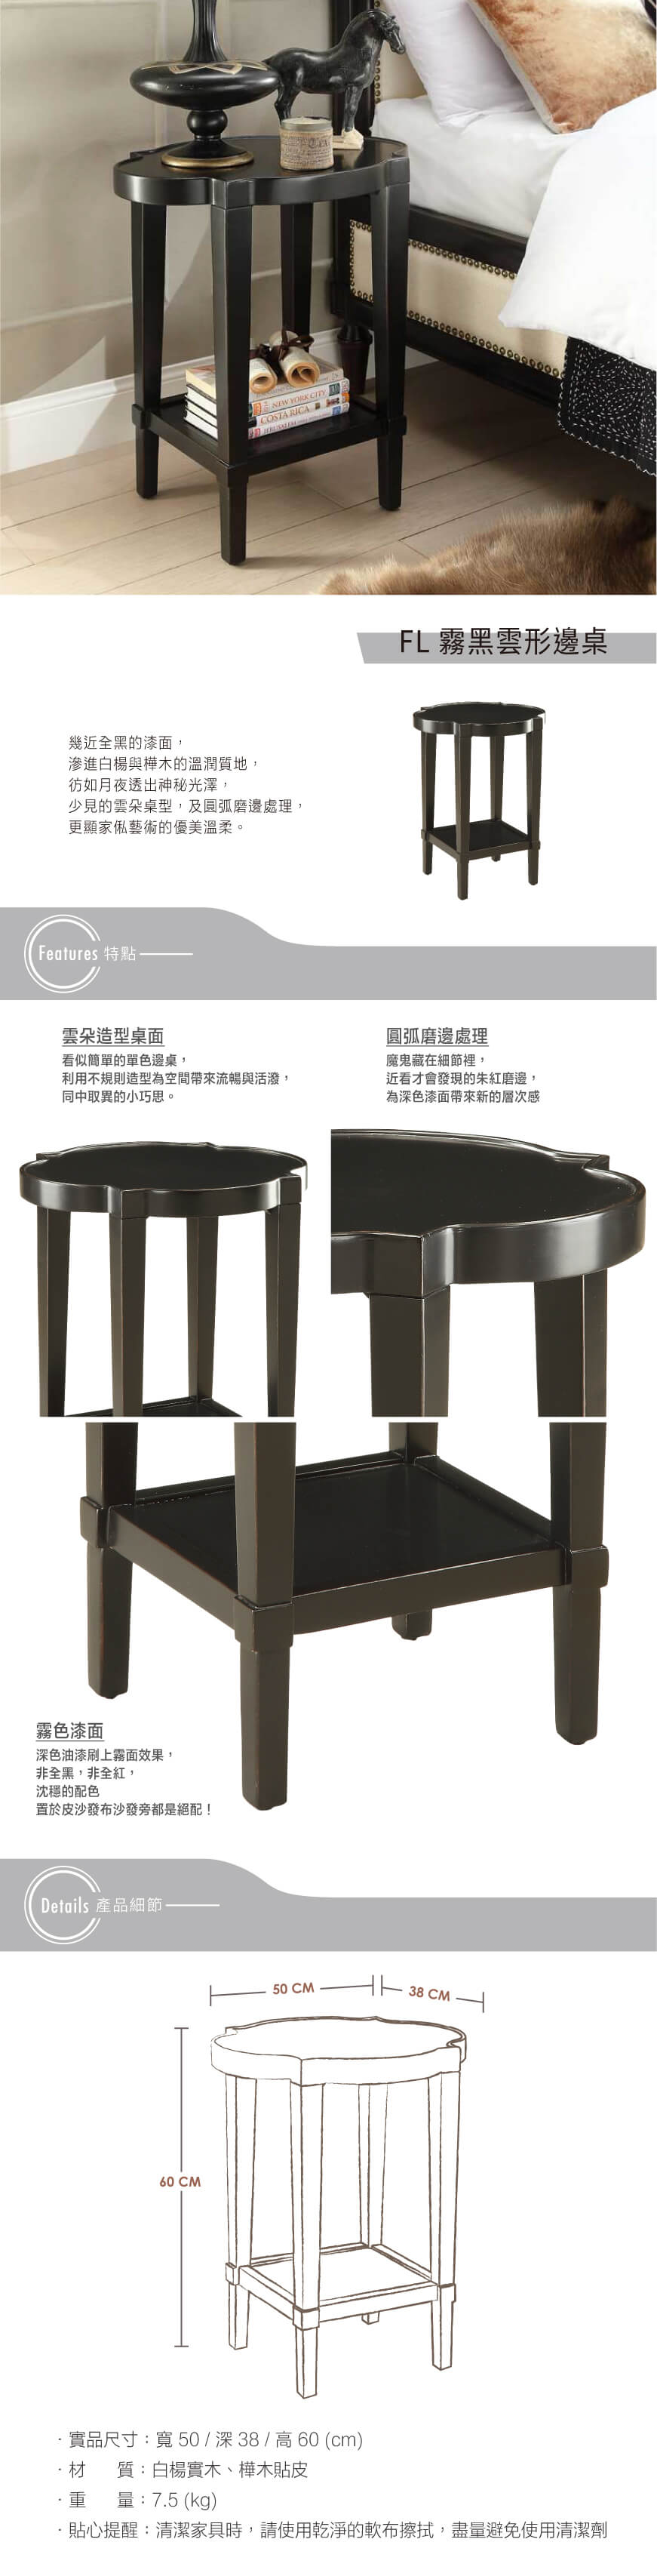 20170728 side table 1